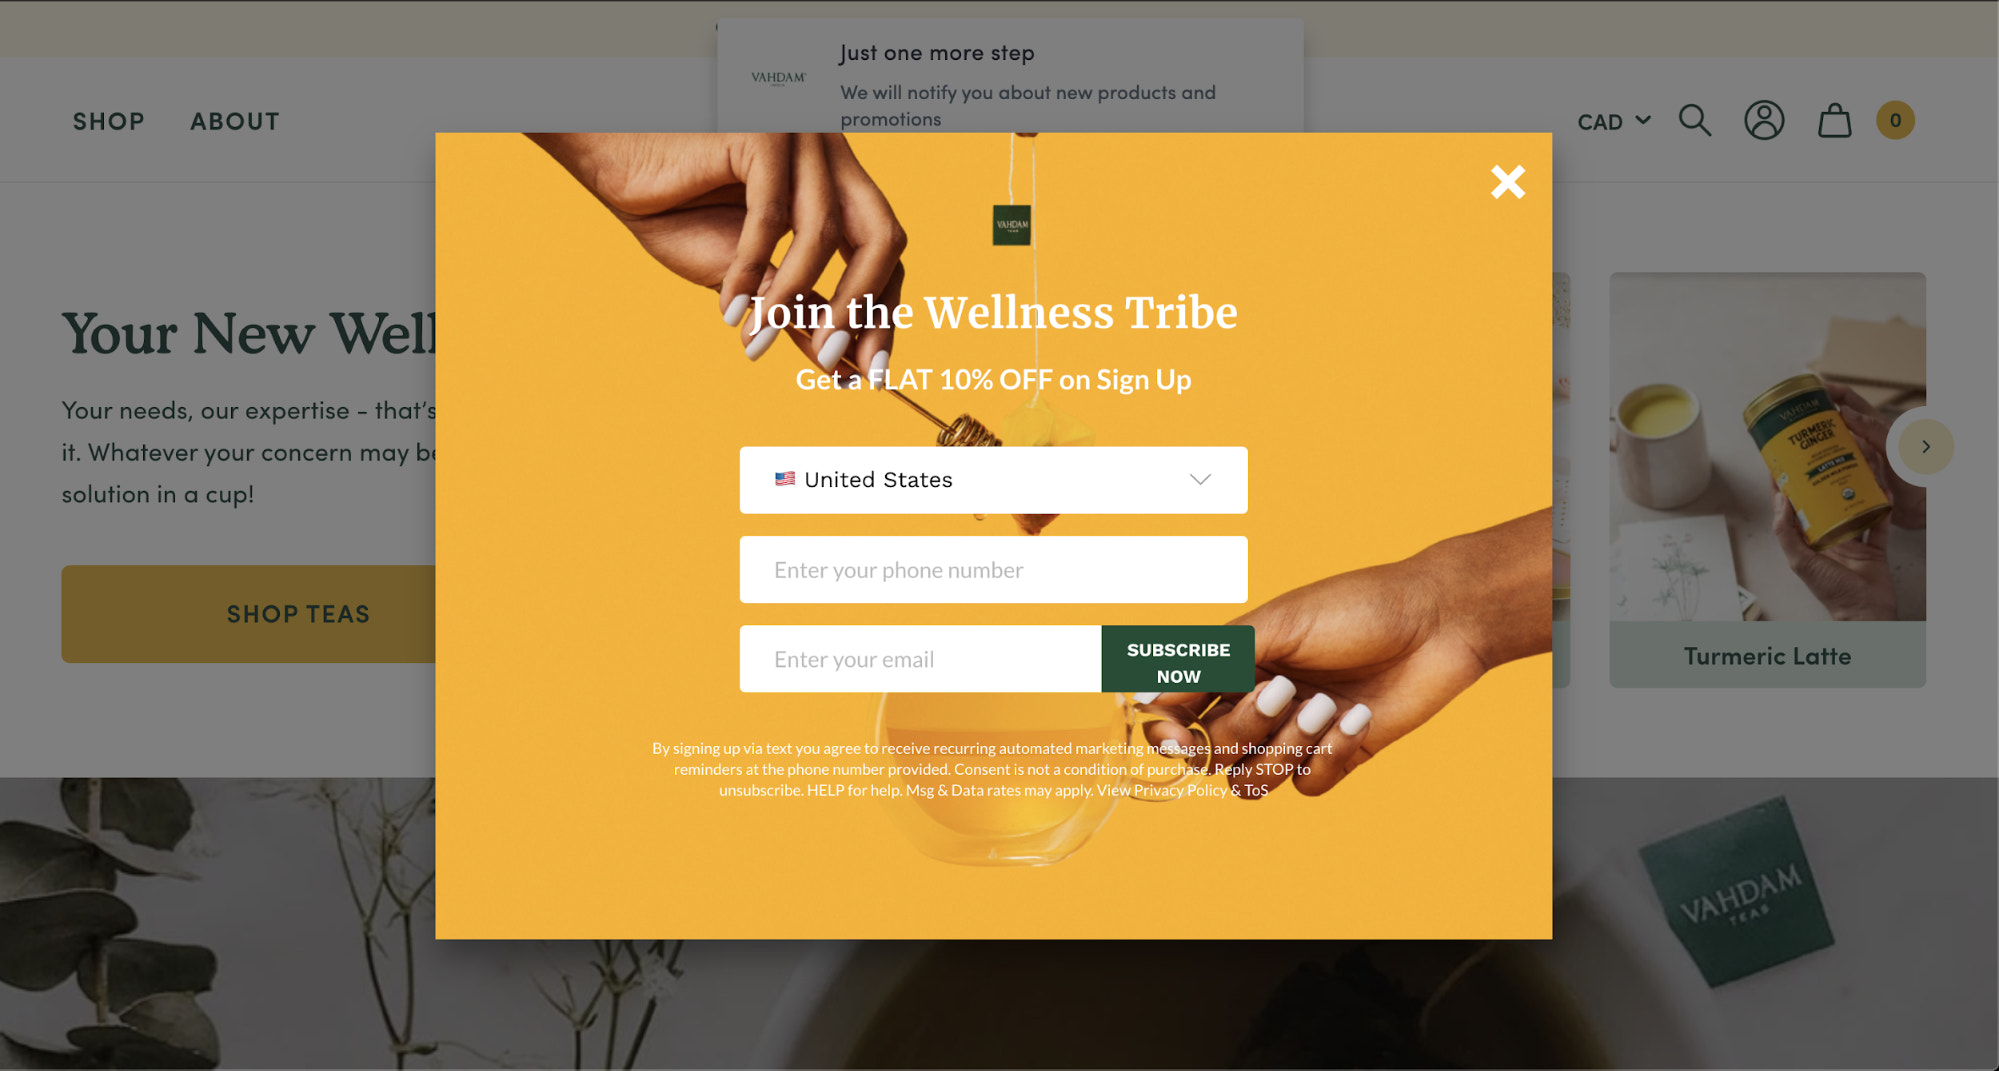 an email opt-in pop-up from vahdam teas